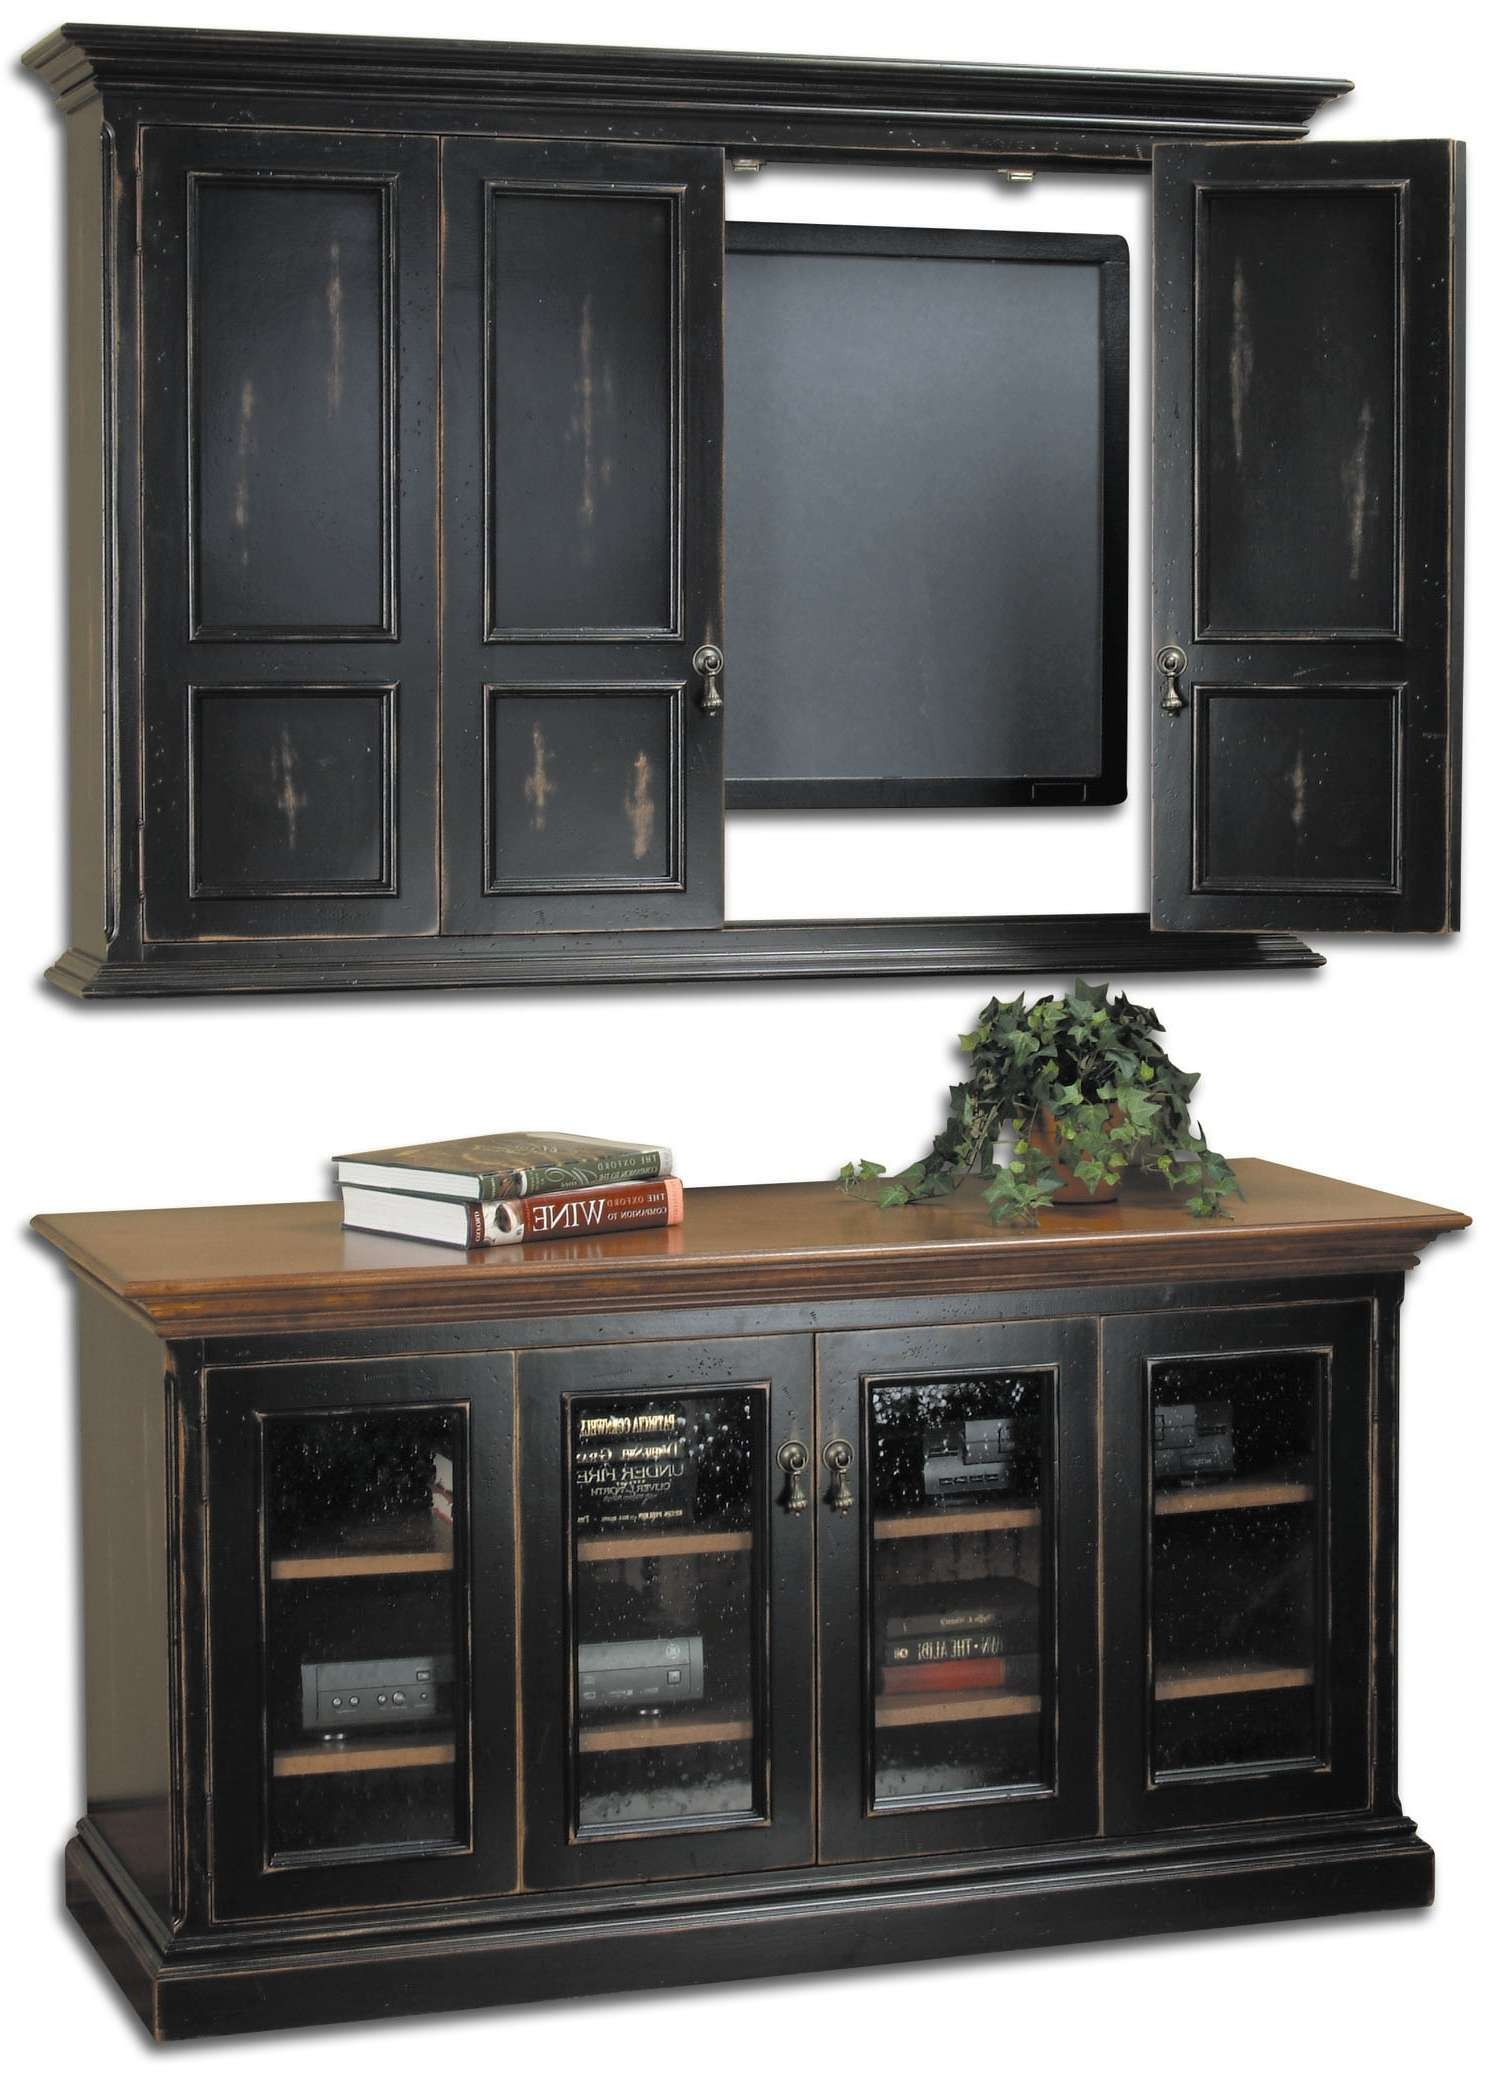 Media Cabinet Withoors To Hide Tv Hidden Wooden Cabinets Storage Inside Enclosed Tv Cabinets With Doors (View 12 of 20)